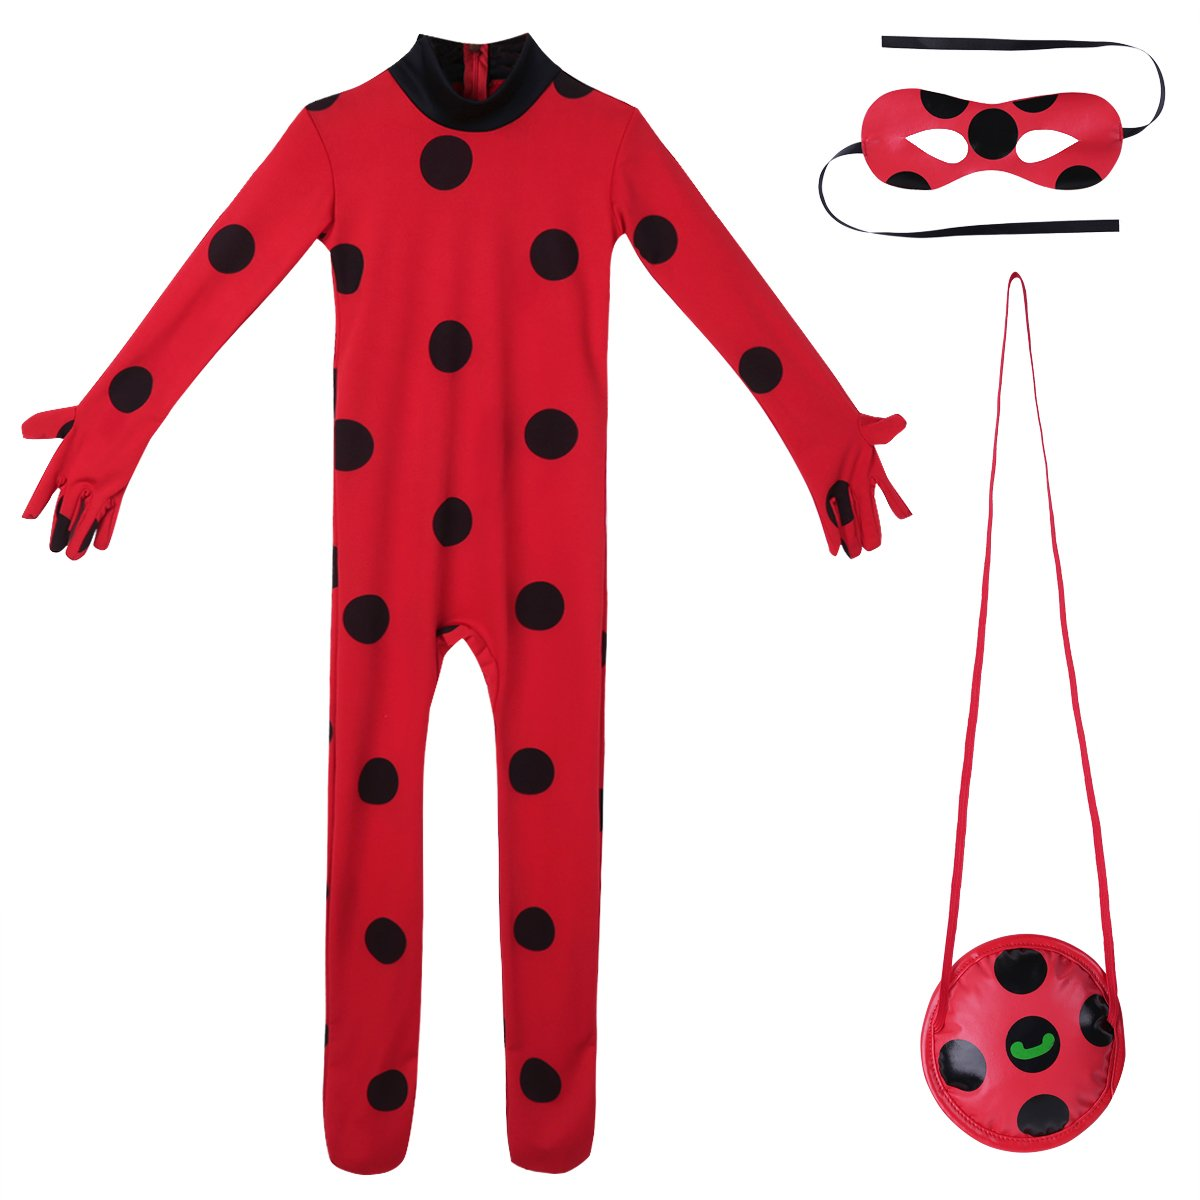 Freebily Kids Girls Ladybug Outfits Costume Girls Marinette Dress Cosplay Jumpsuit for Halloween Performance Red(Outfits) 10-12